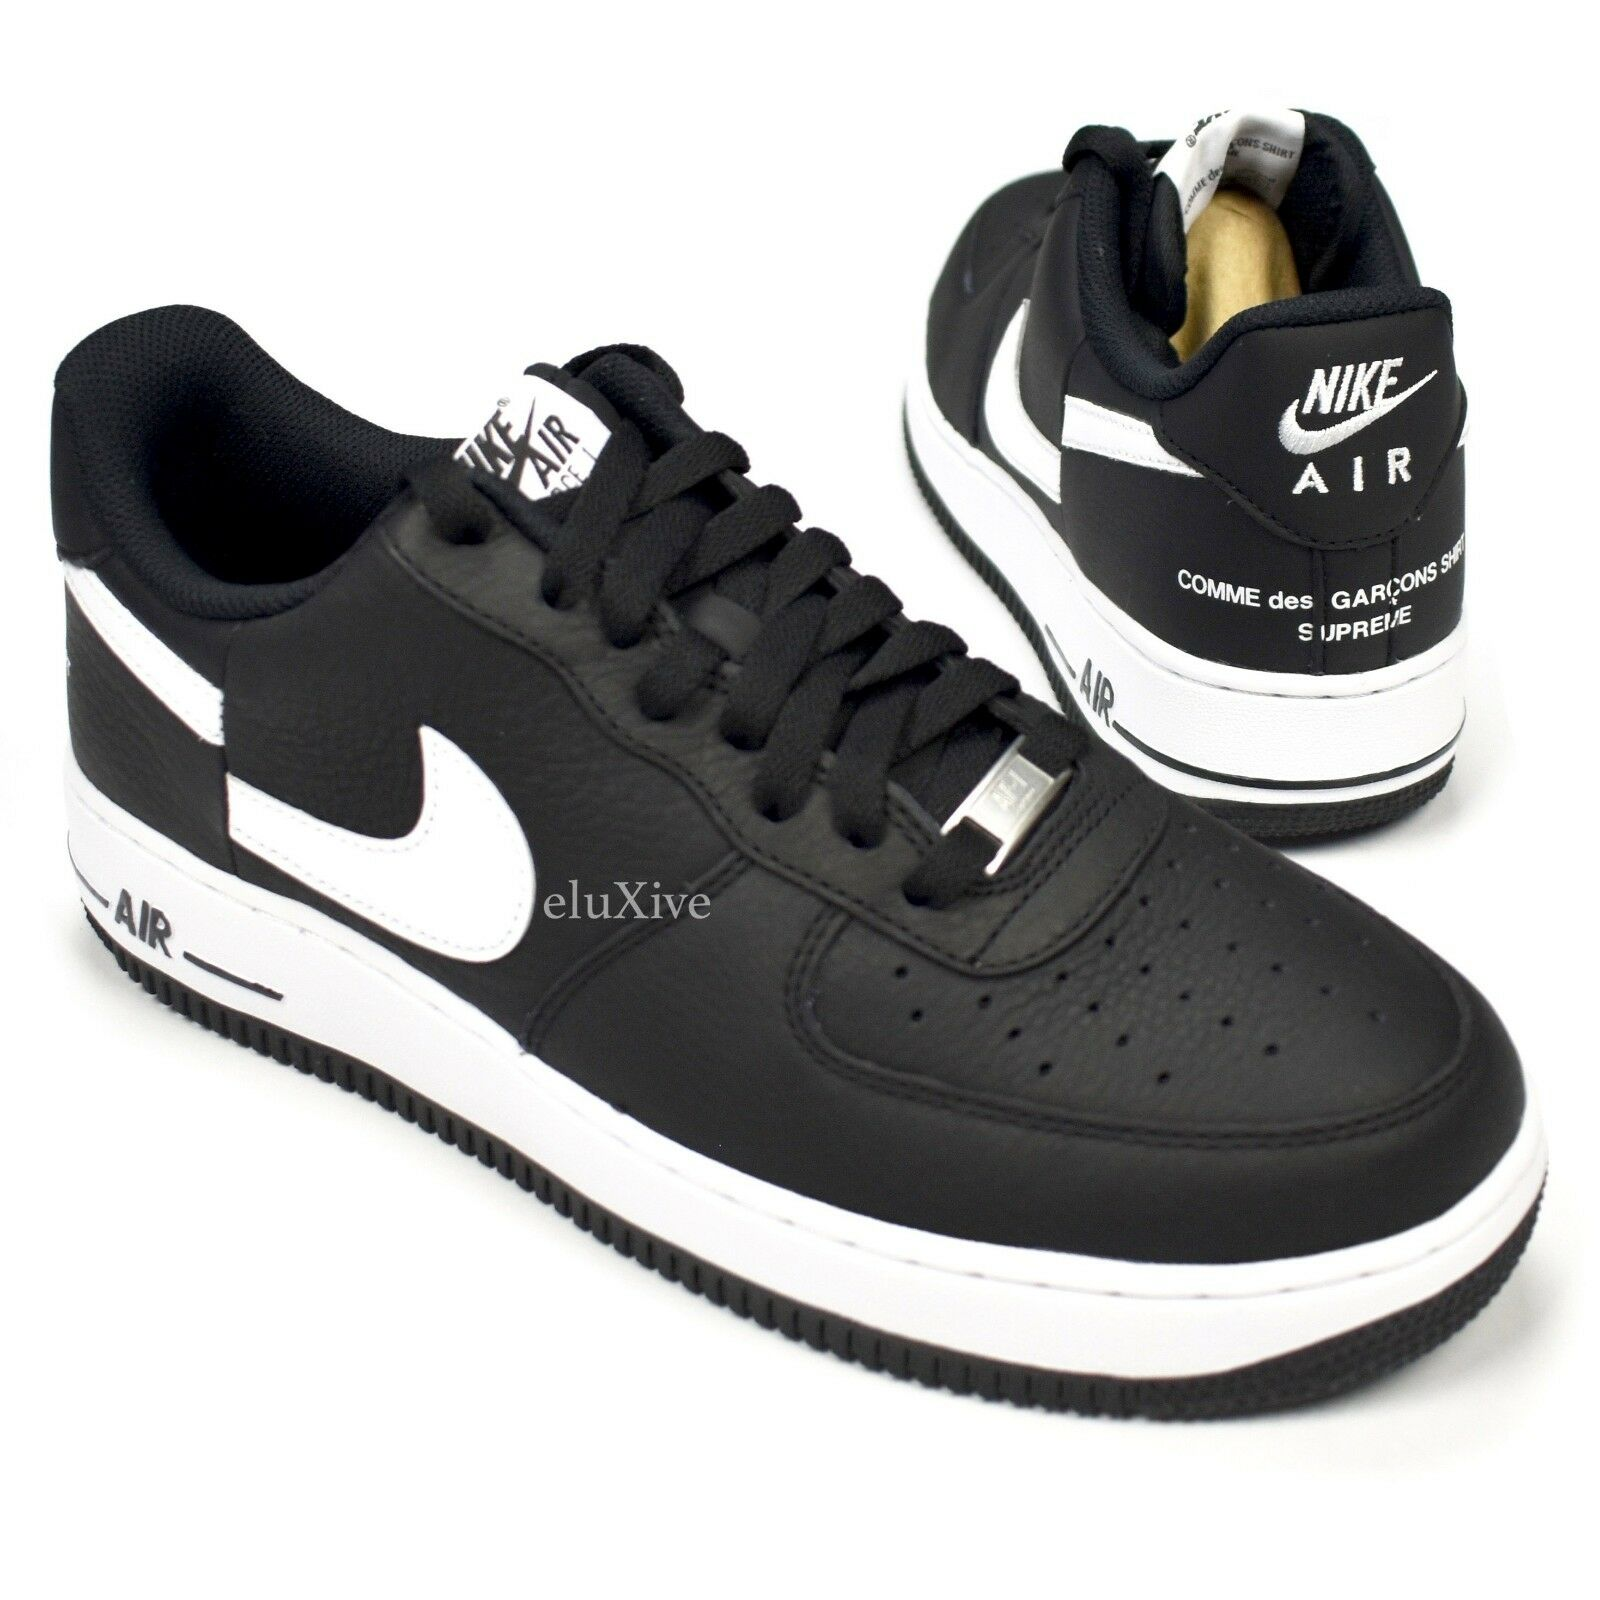 NWT Supreme Comme des Garcons Nike Air Force 1 CDG Black Split Logo 9 AUTHENTIC